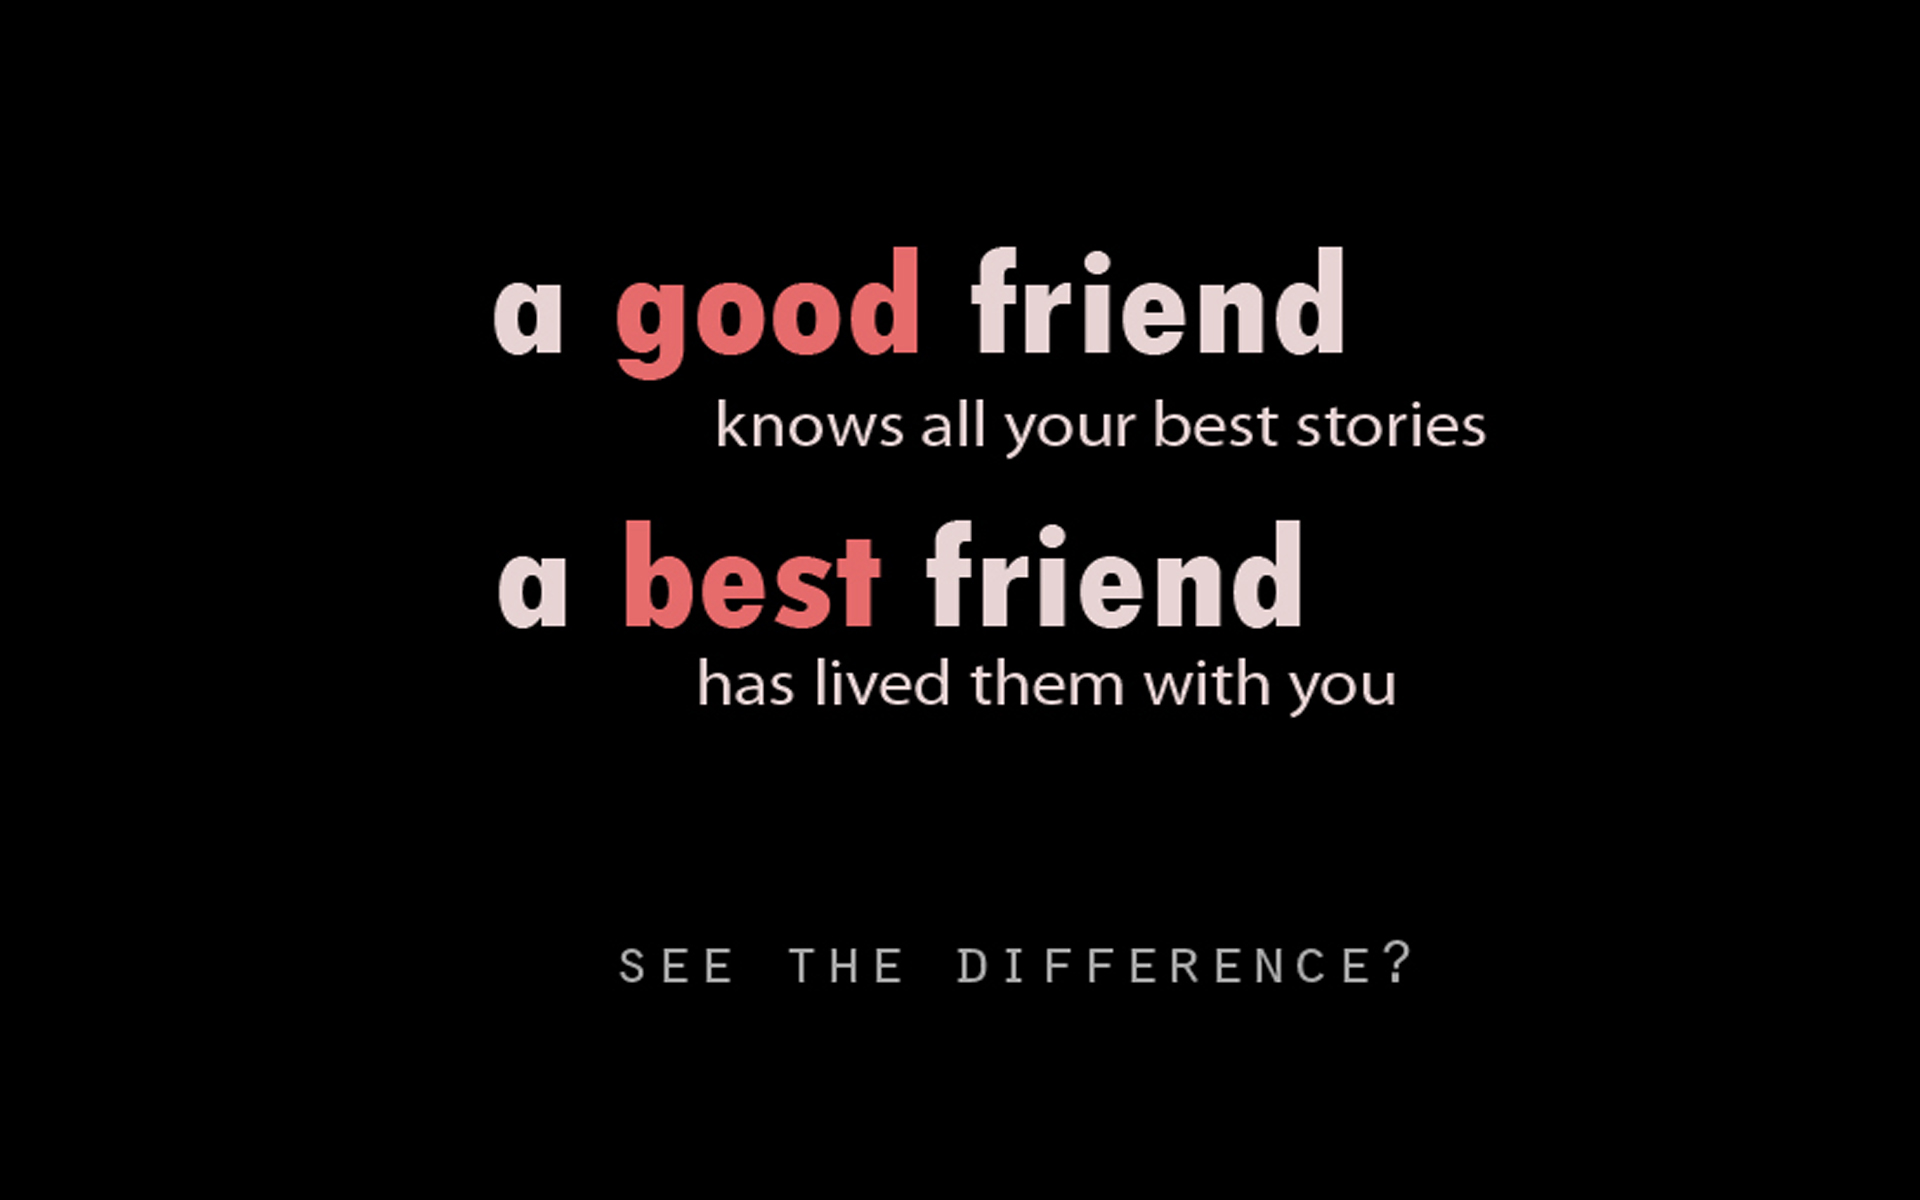 Best friend   Wallpaper High Definition High Quality Widescreen 1920x1200